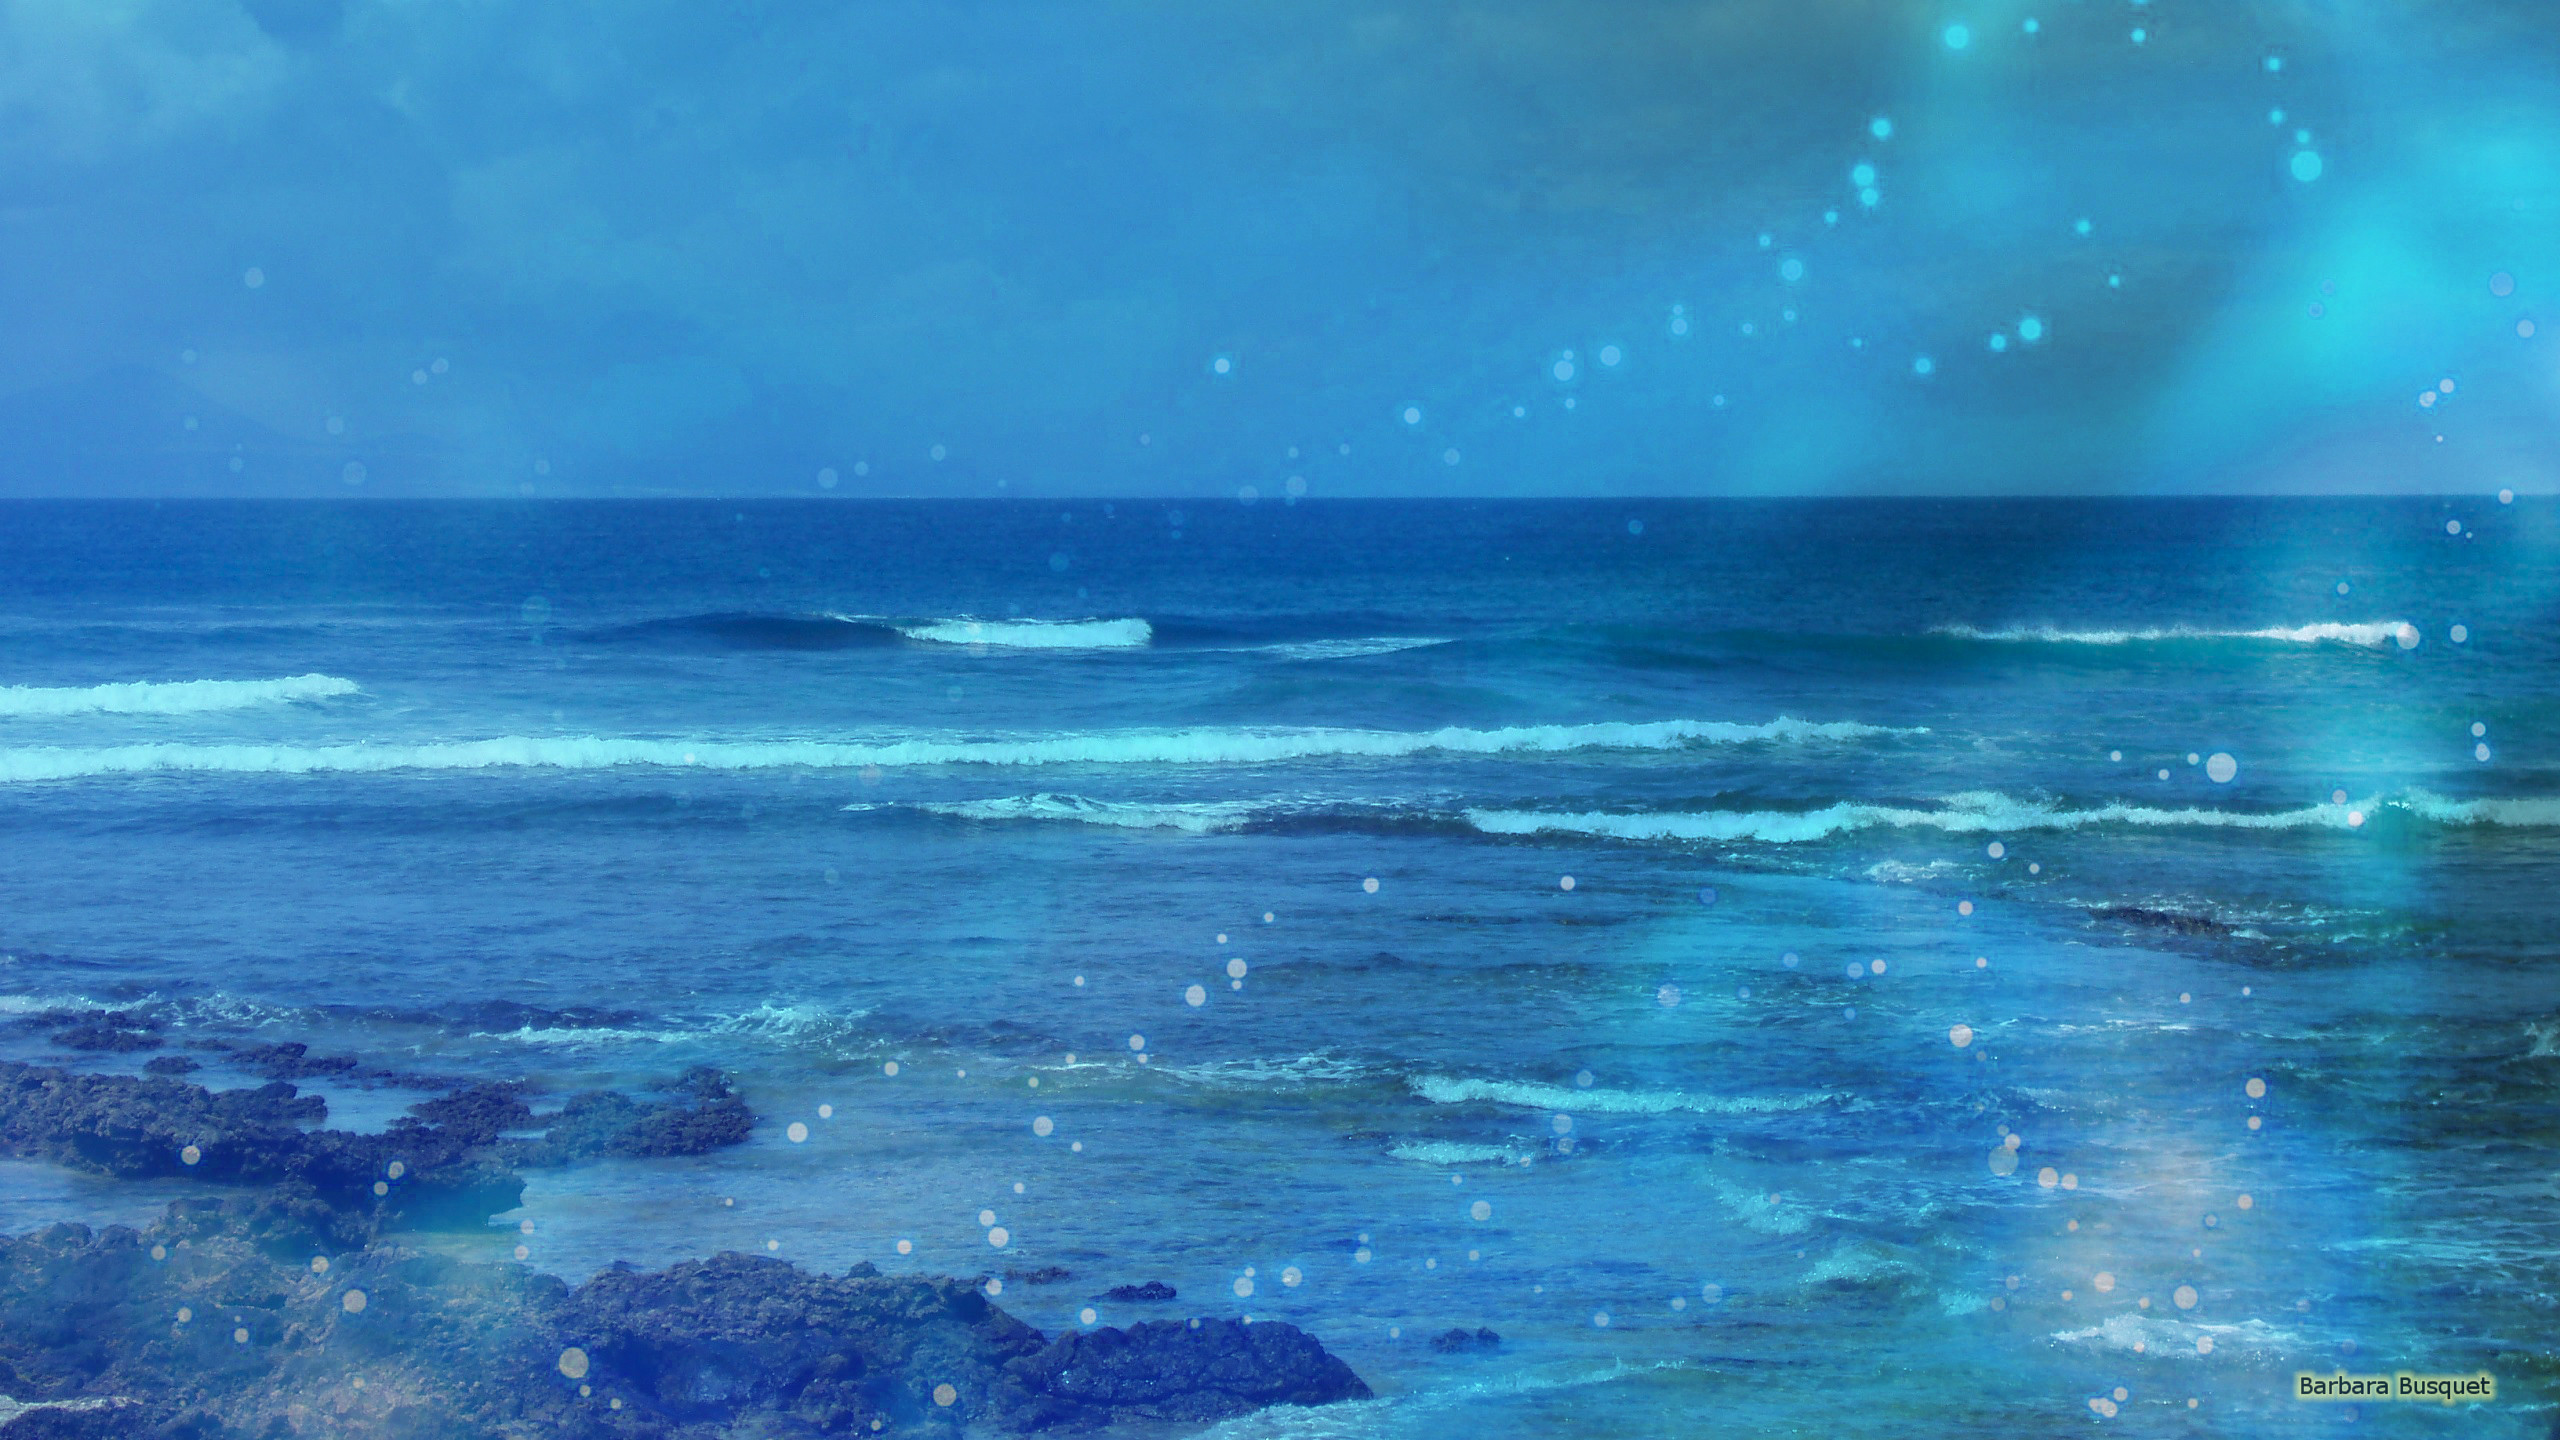 Ocean waves high quality resolution wallpapers black rectangle leg